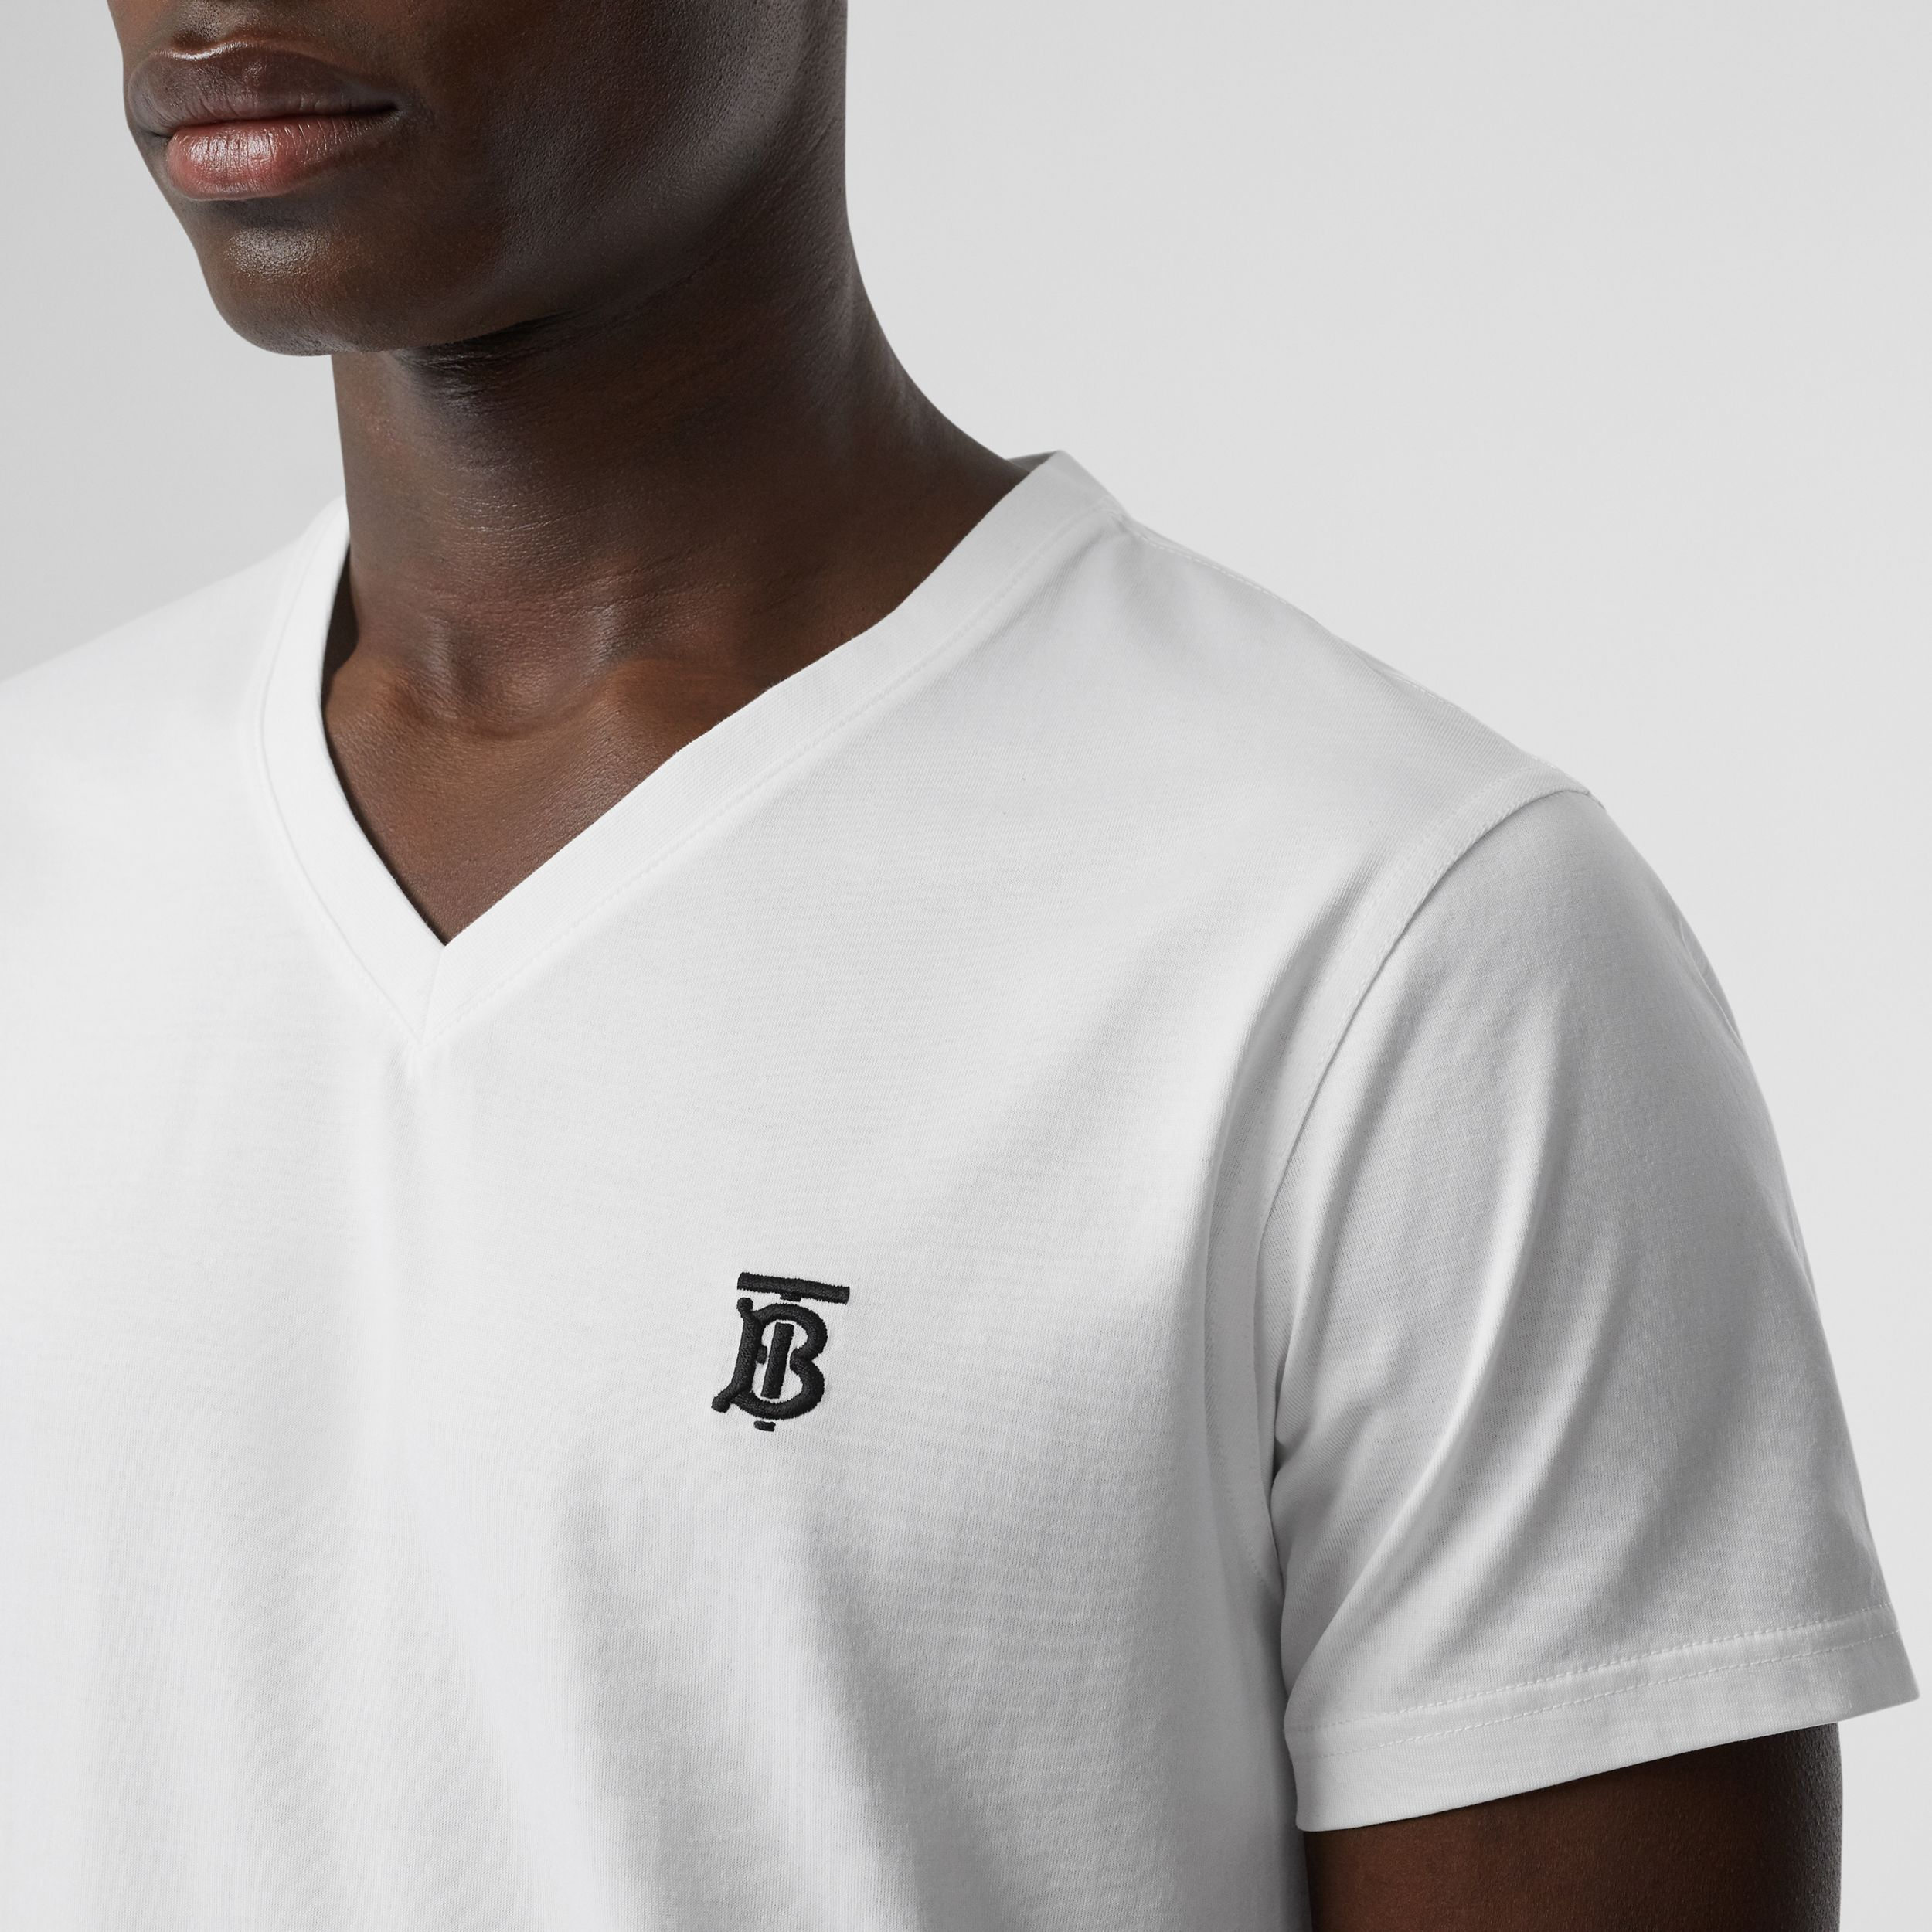 Monogram Motif Cotton V-neck T-shirt in White - Men | Burberry - 2